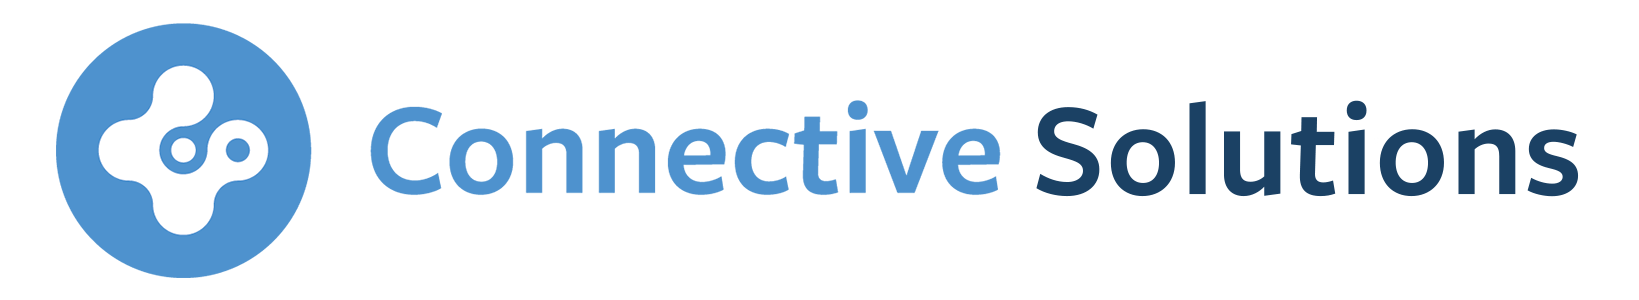 Connective Solutions logo